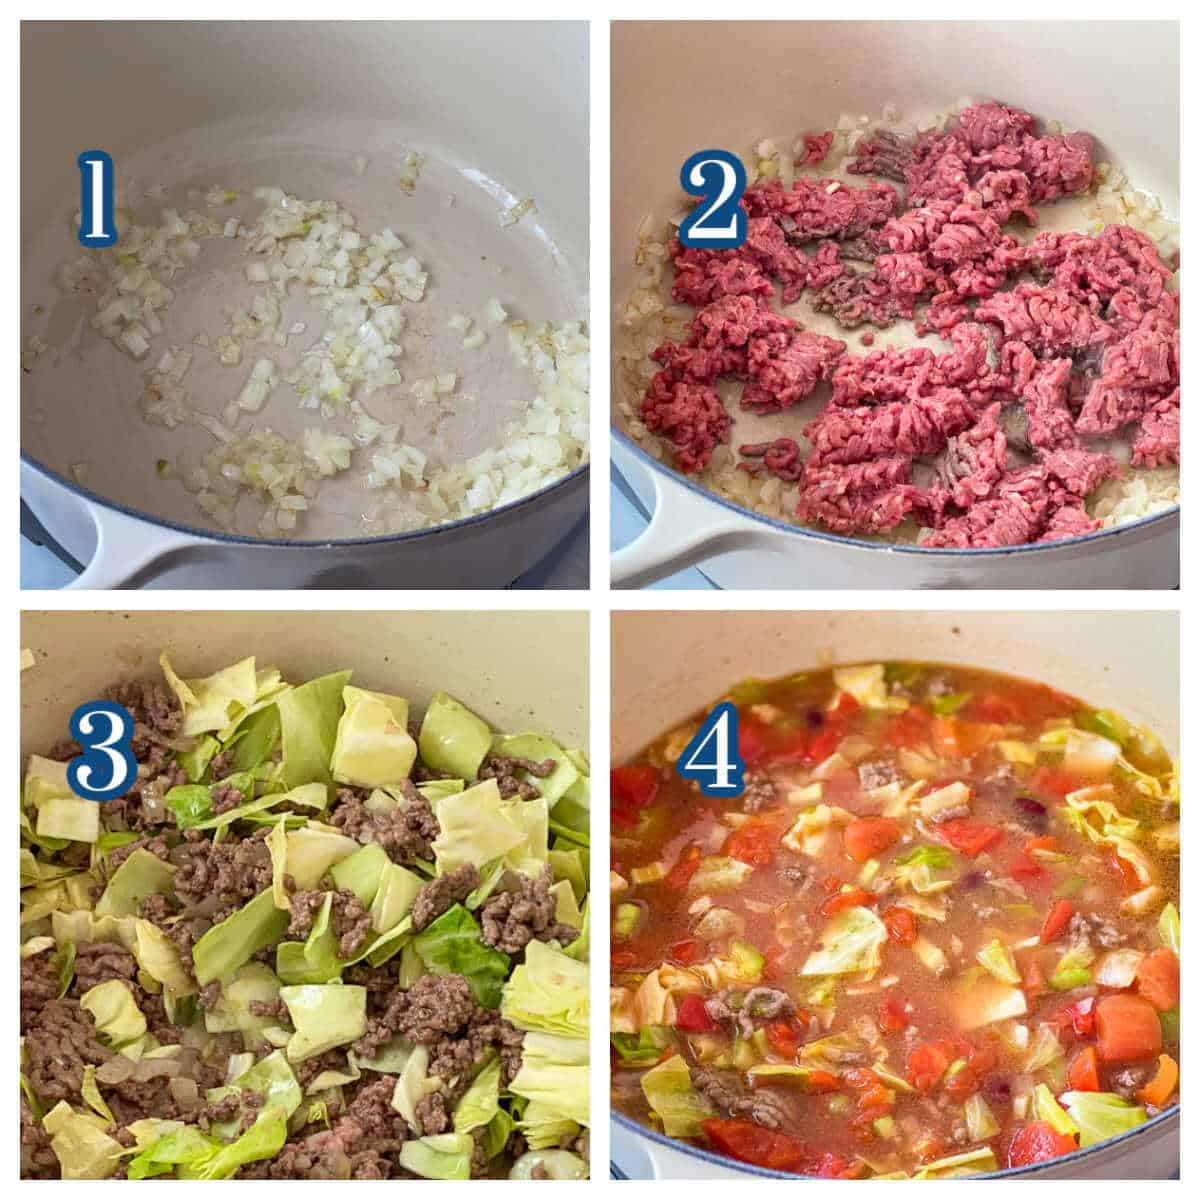 Process Collage of 4 steps to make yummy Cabbage Soup with Hamburger